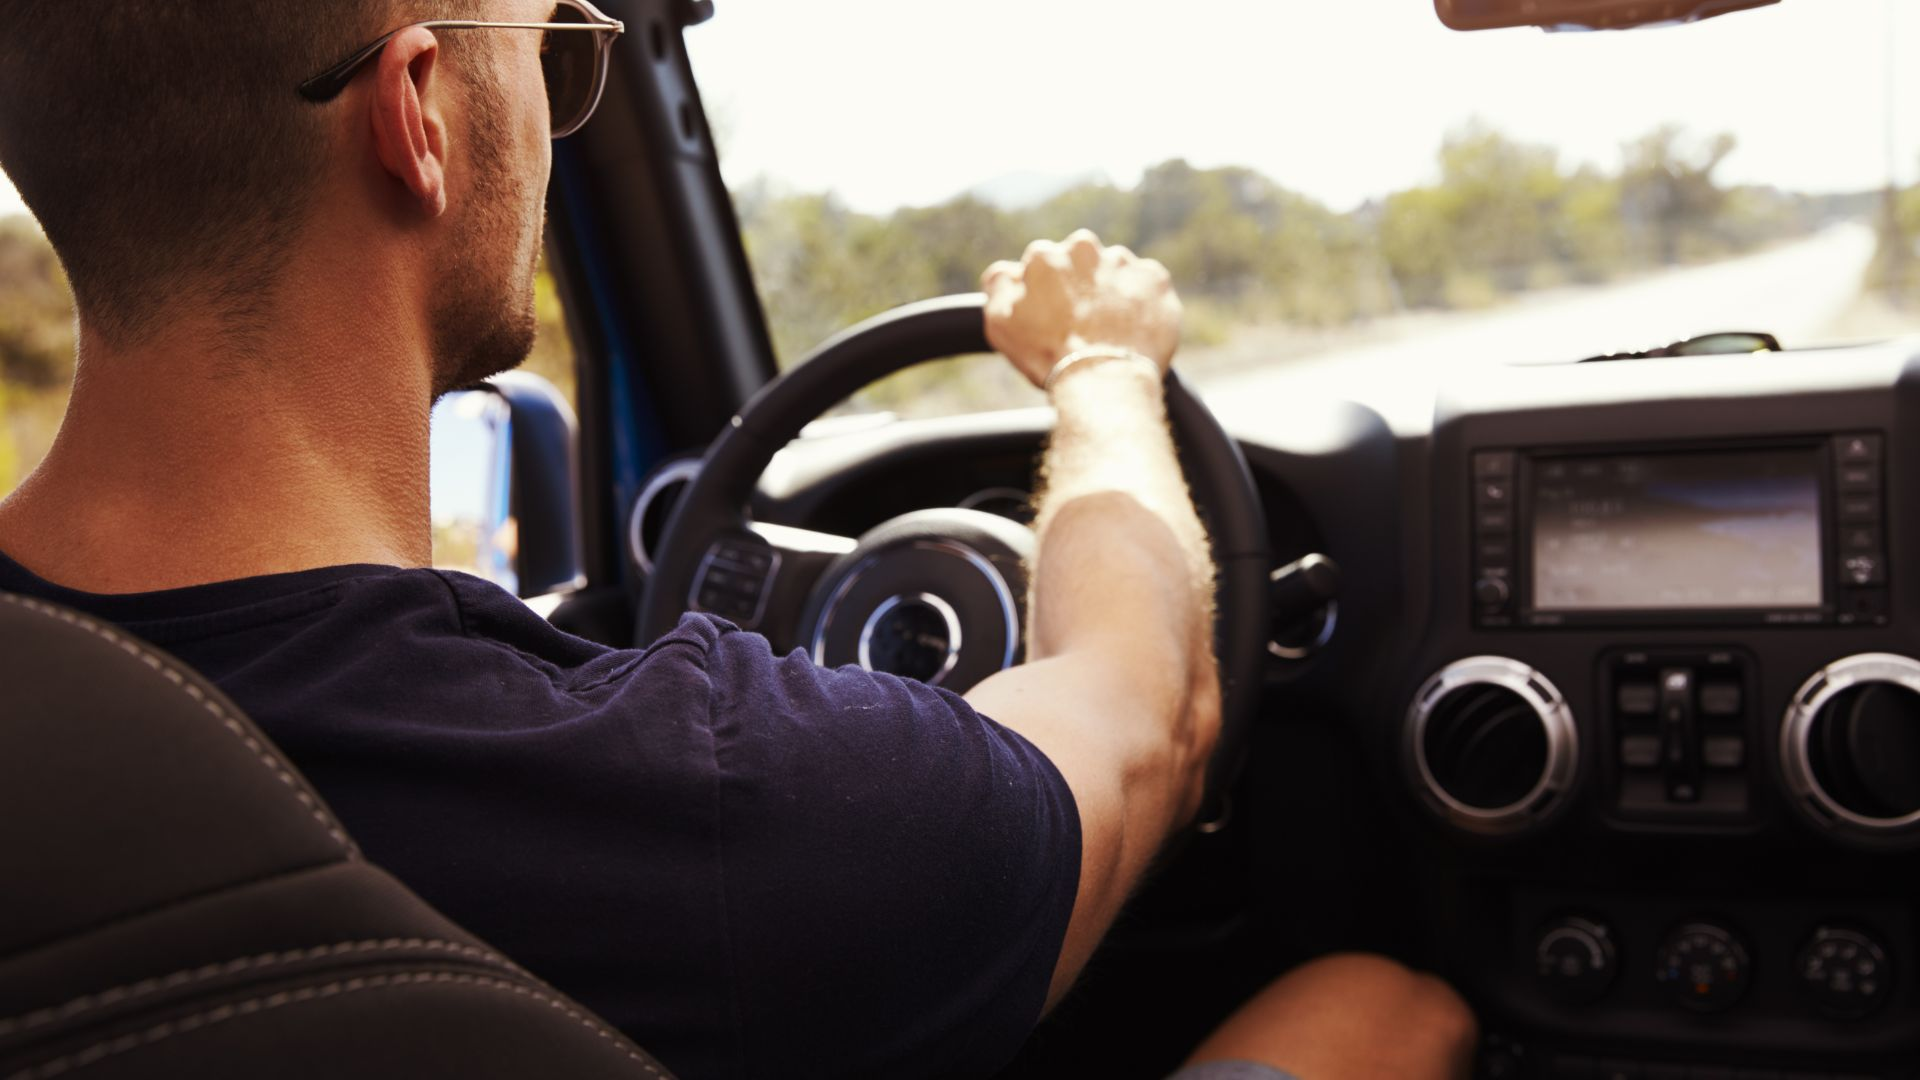 Young driver deaths 'swept under the carpet'